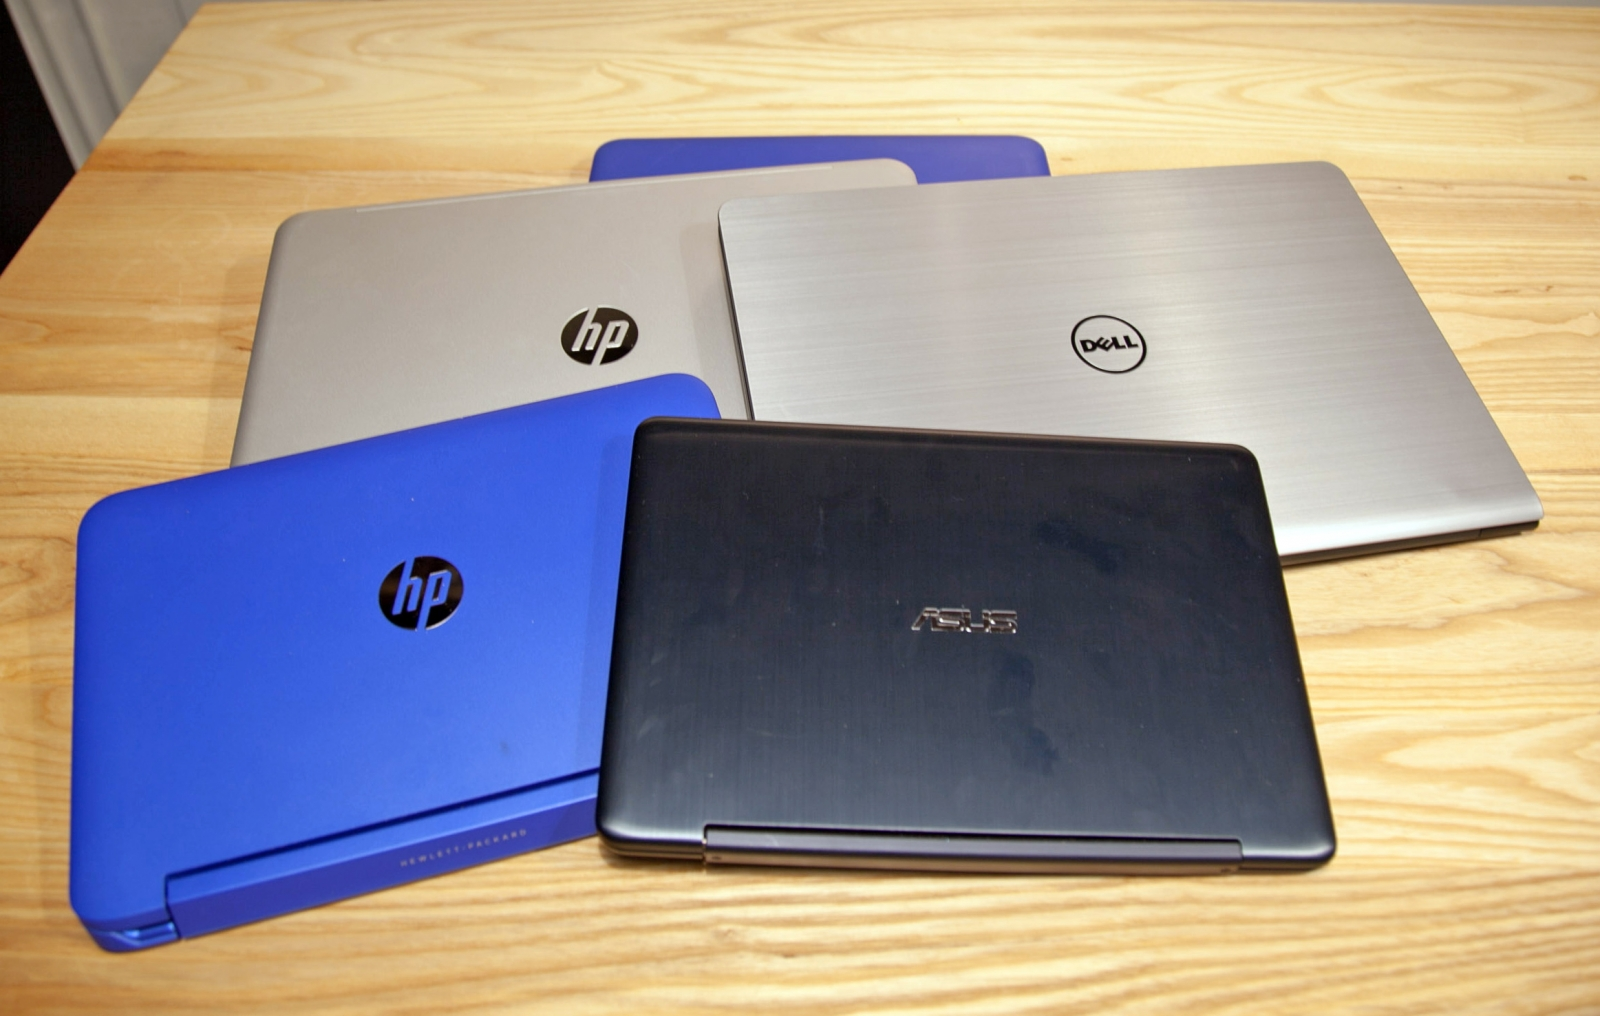 HP, Asus, Acer, Lenovo and Dell laptops